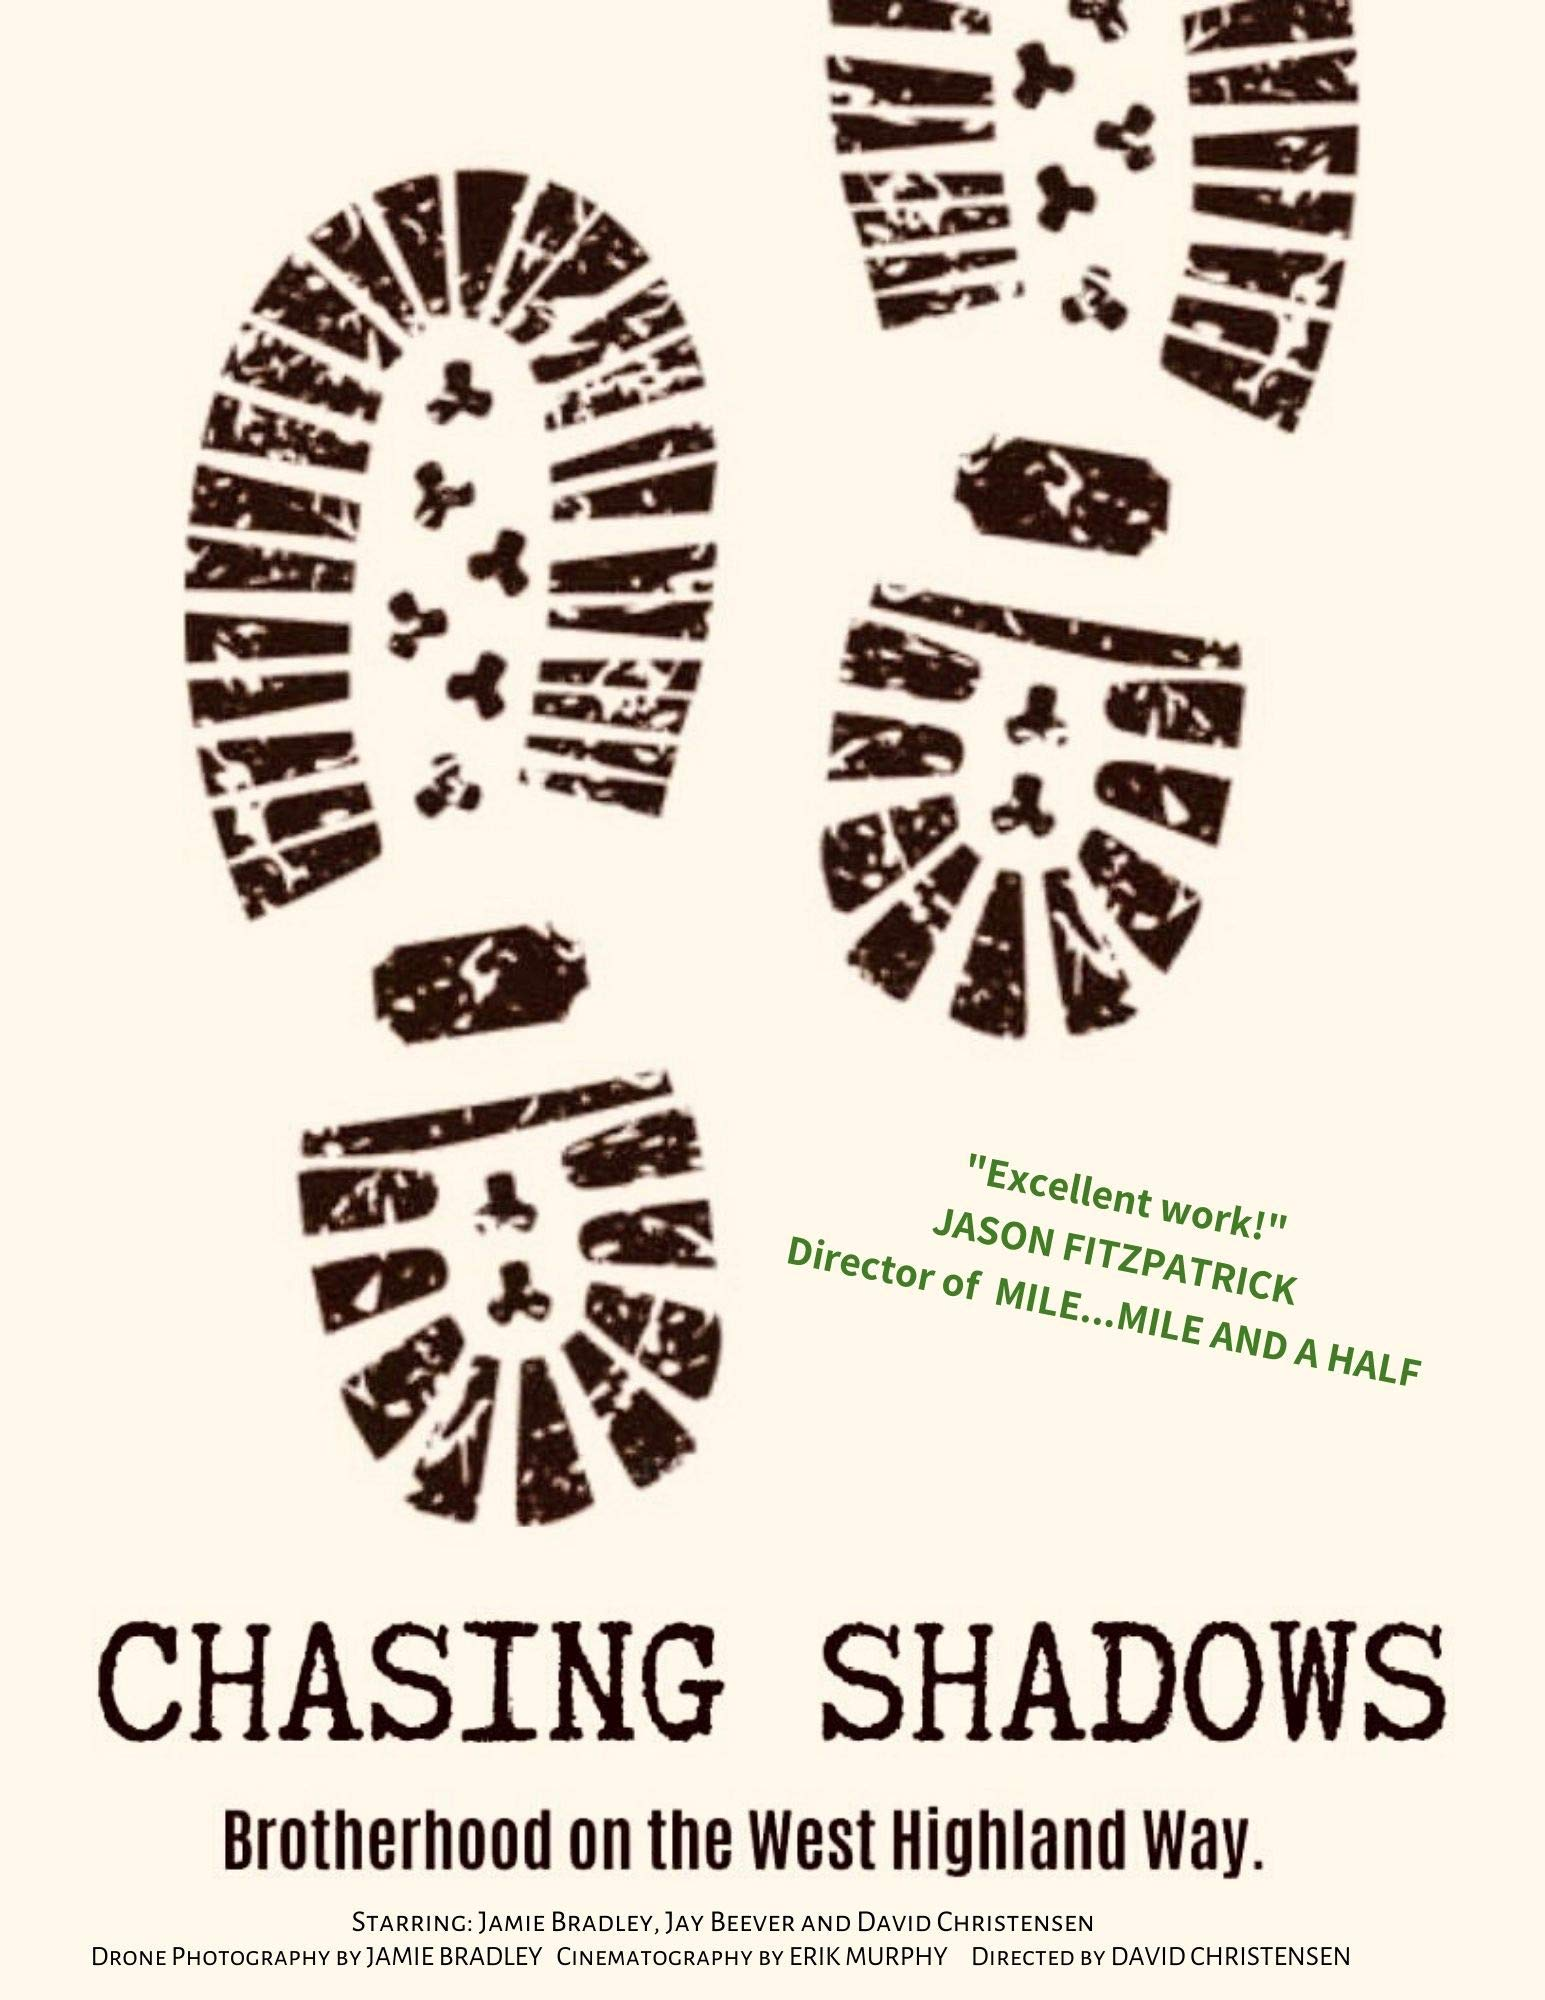 Chasing Shadows: Brotherhood on the West Highland Way